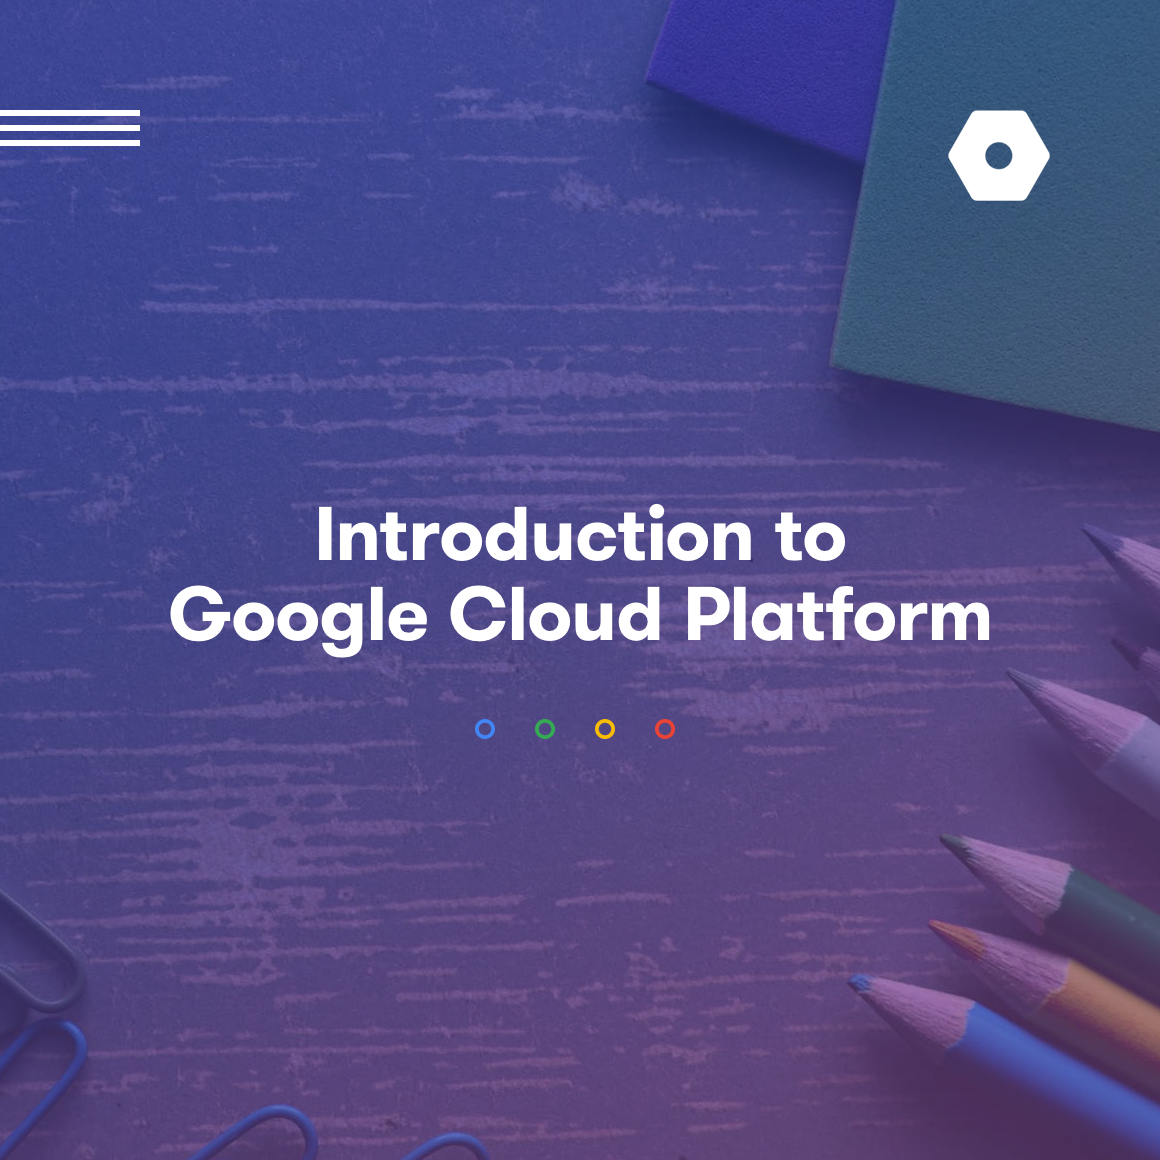 Course recommendation for the GOOGLE CLOUD CERTIFIED Professional